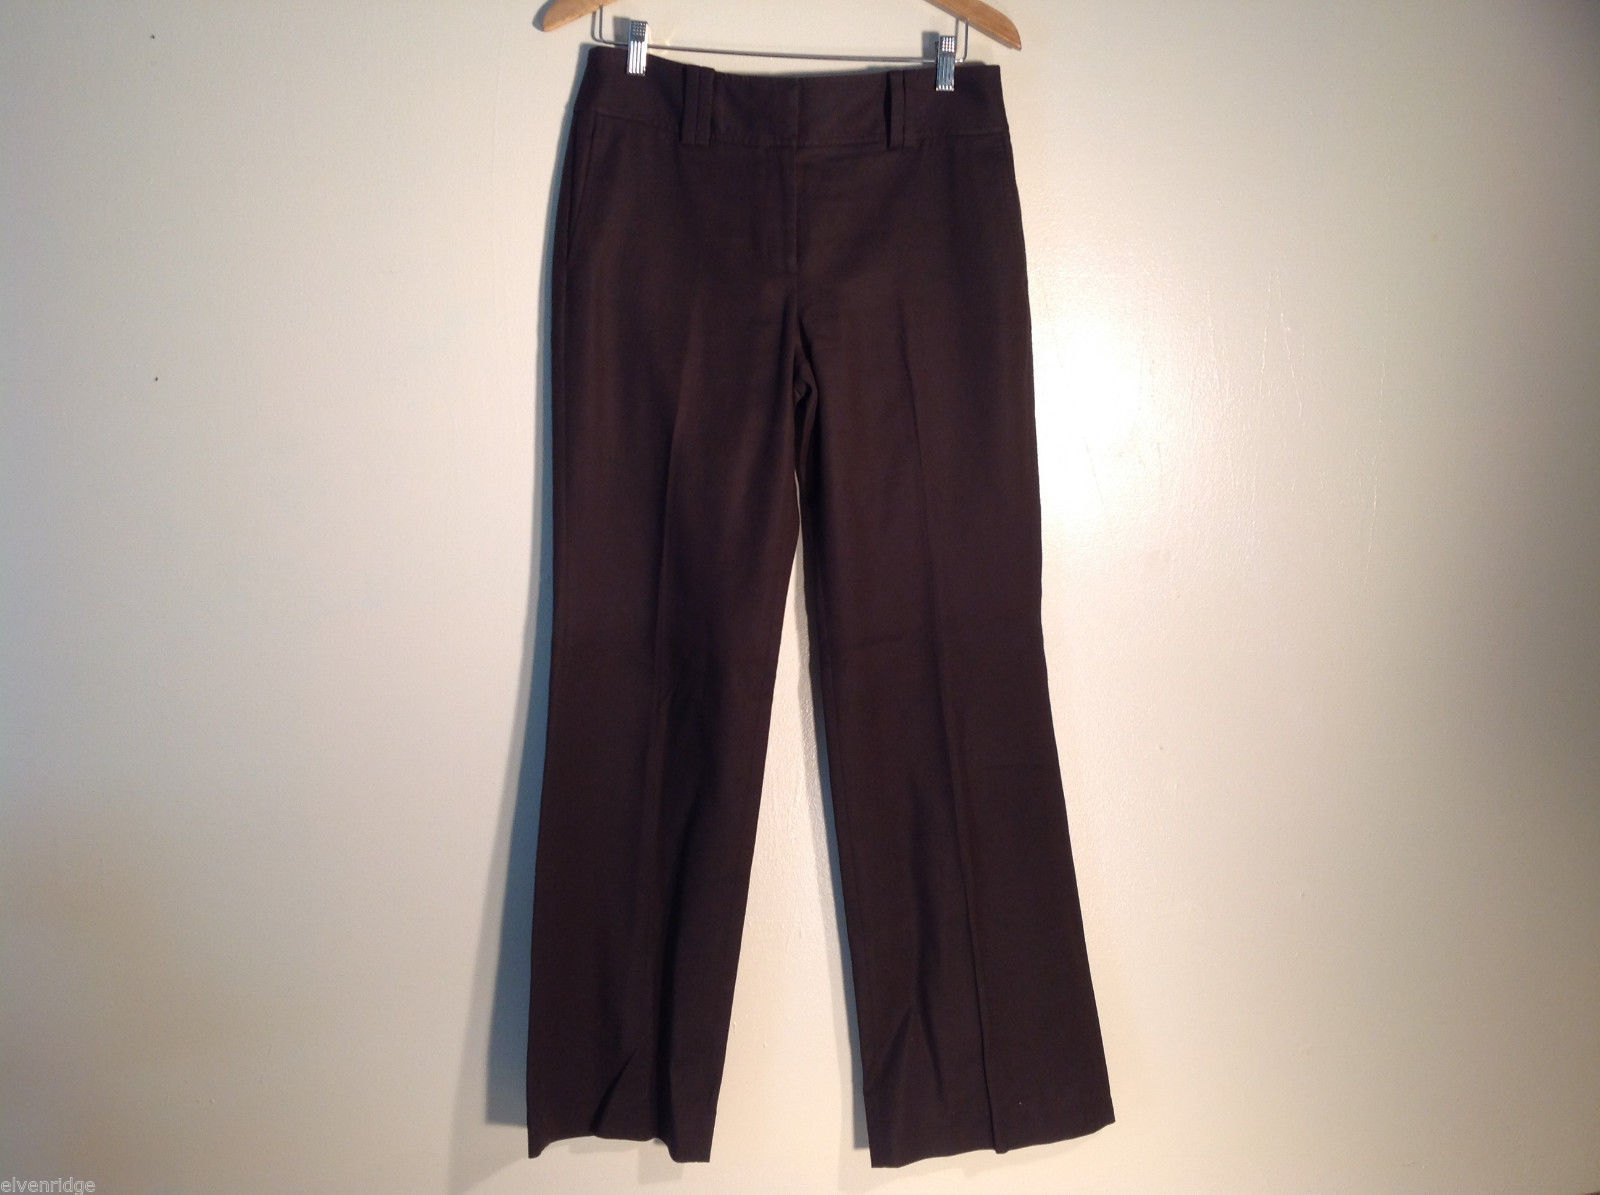 Womens Ann Taylor Size 8 Brown Casual/Dress Pants 100% cotton, Excellent